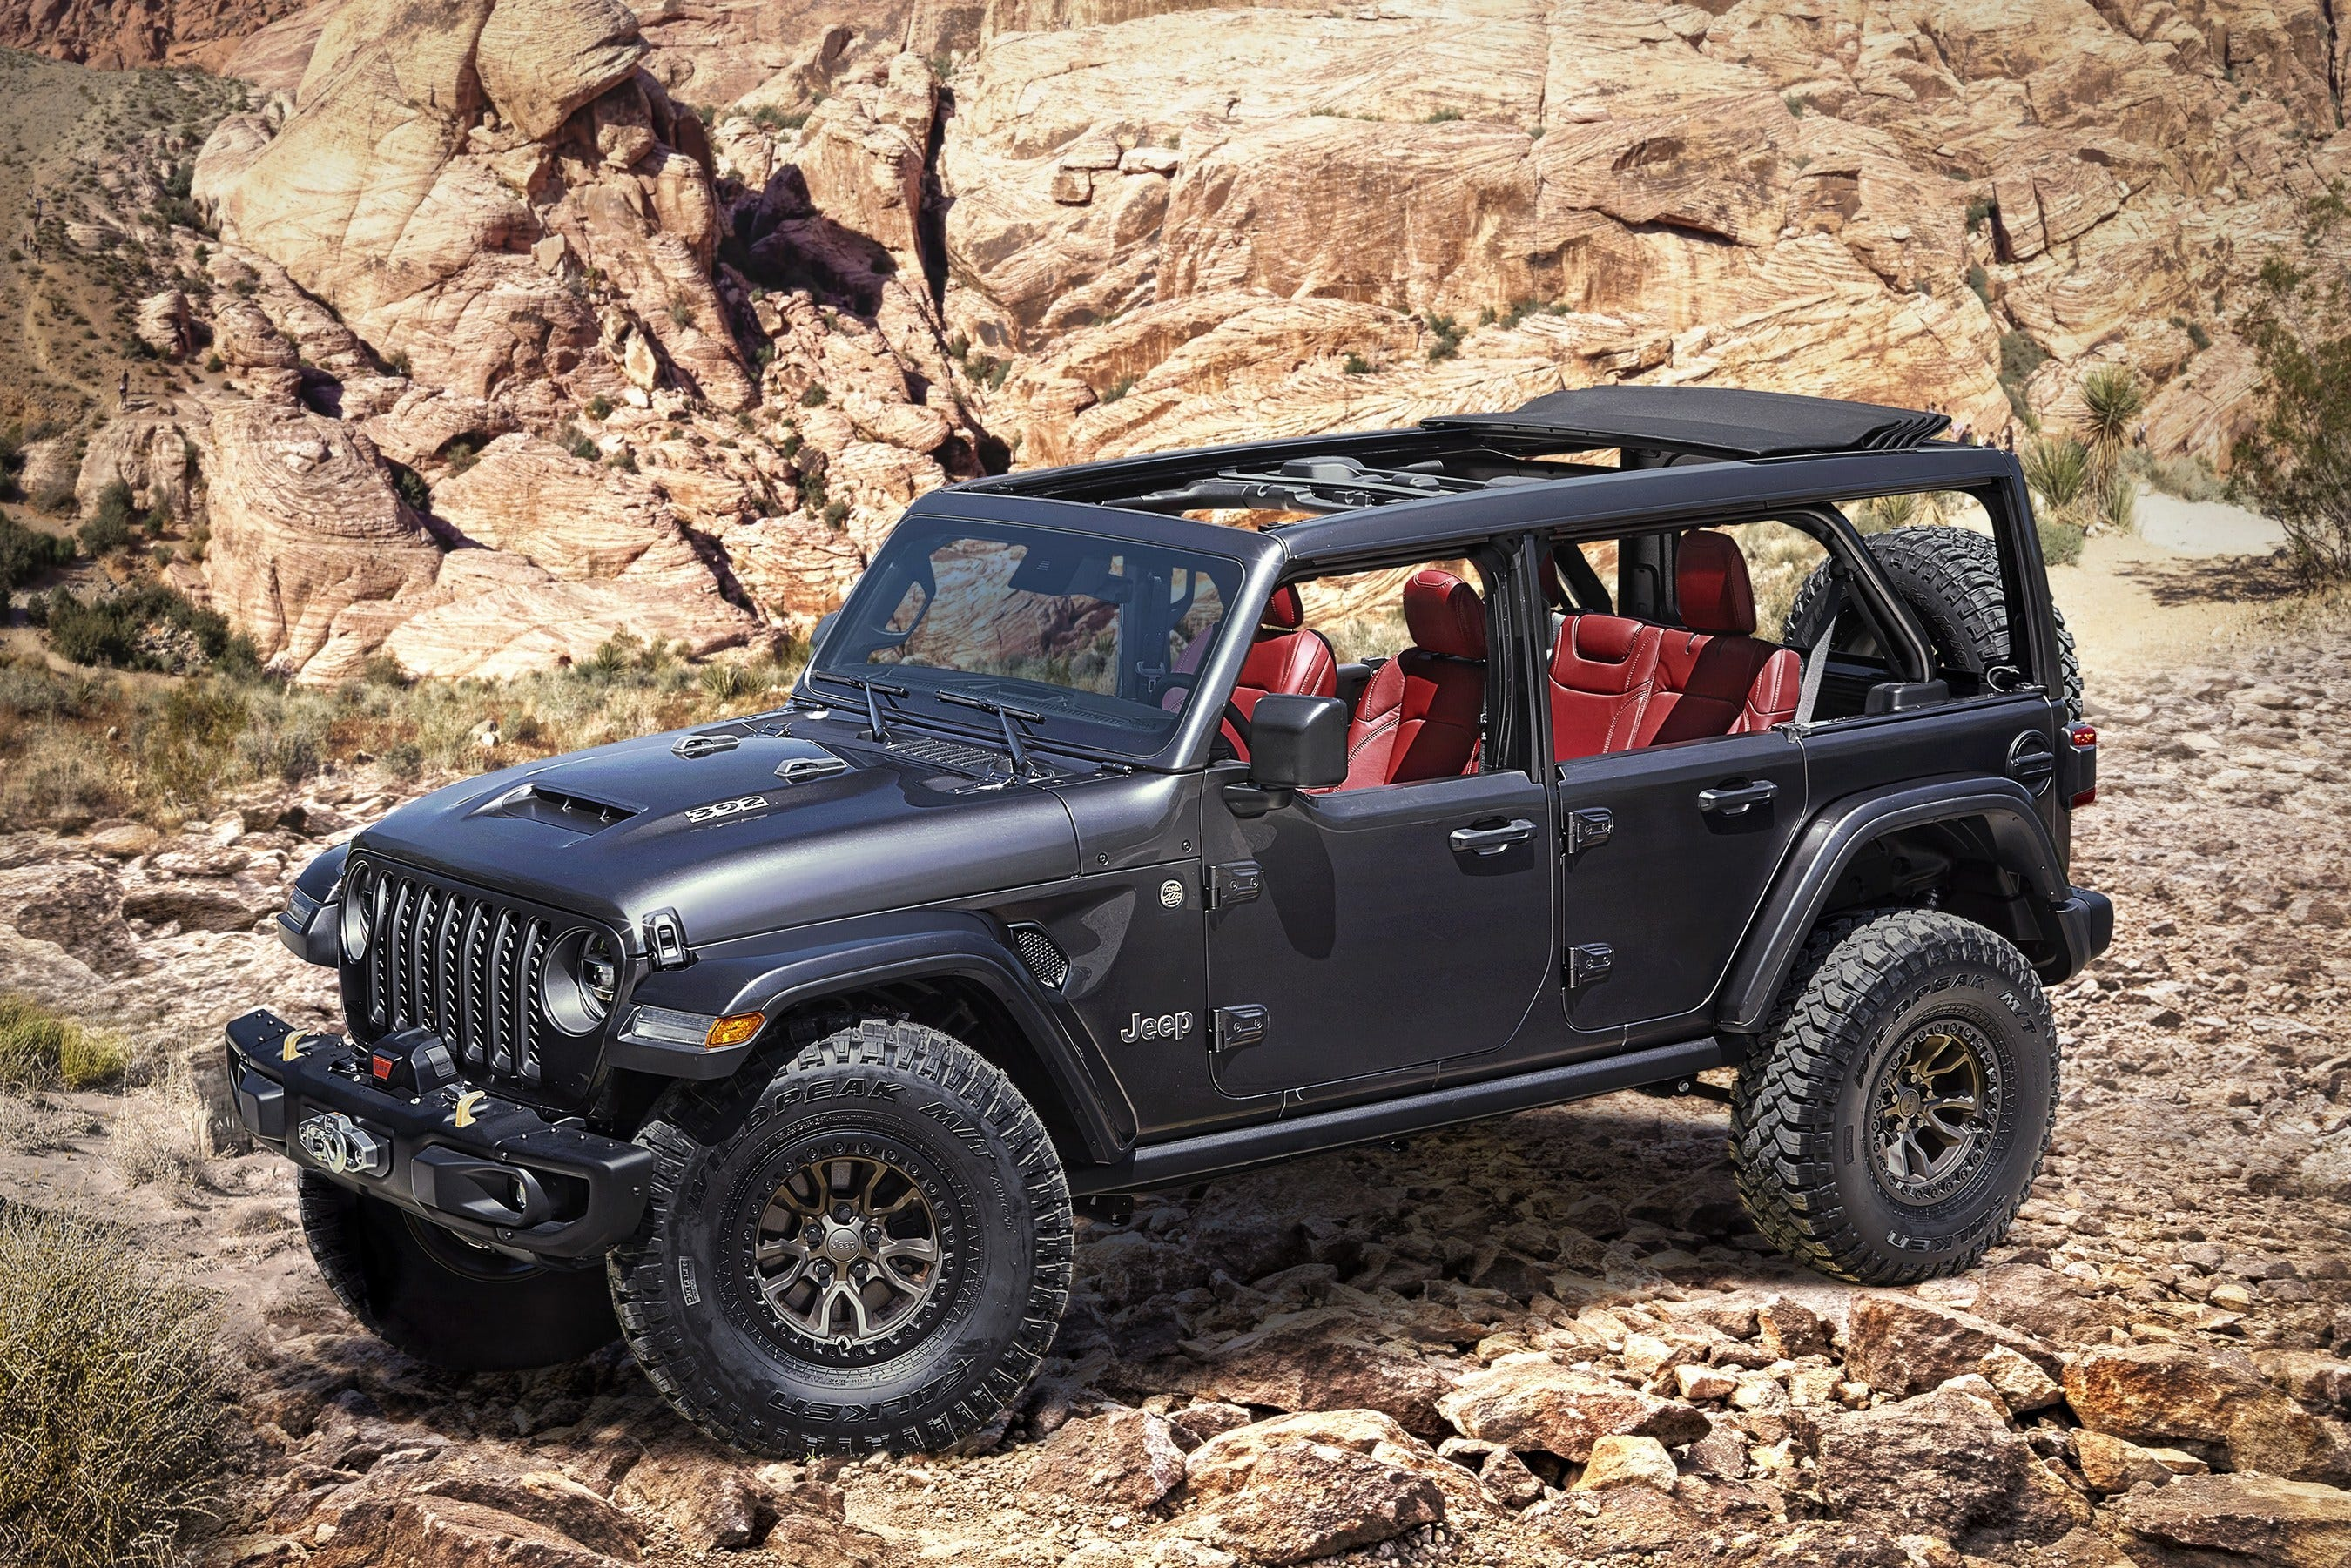 2021 The Jeep Wrangler Overview